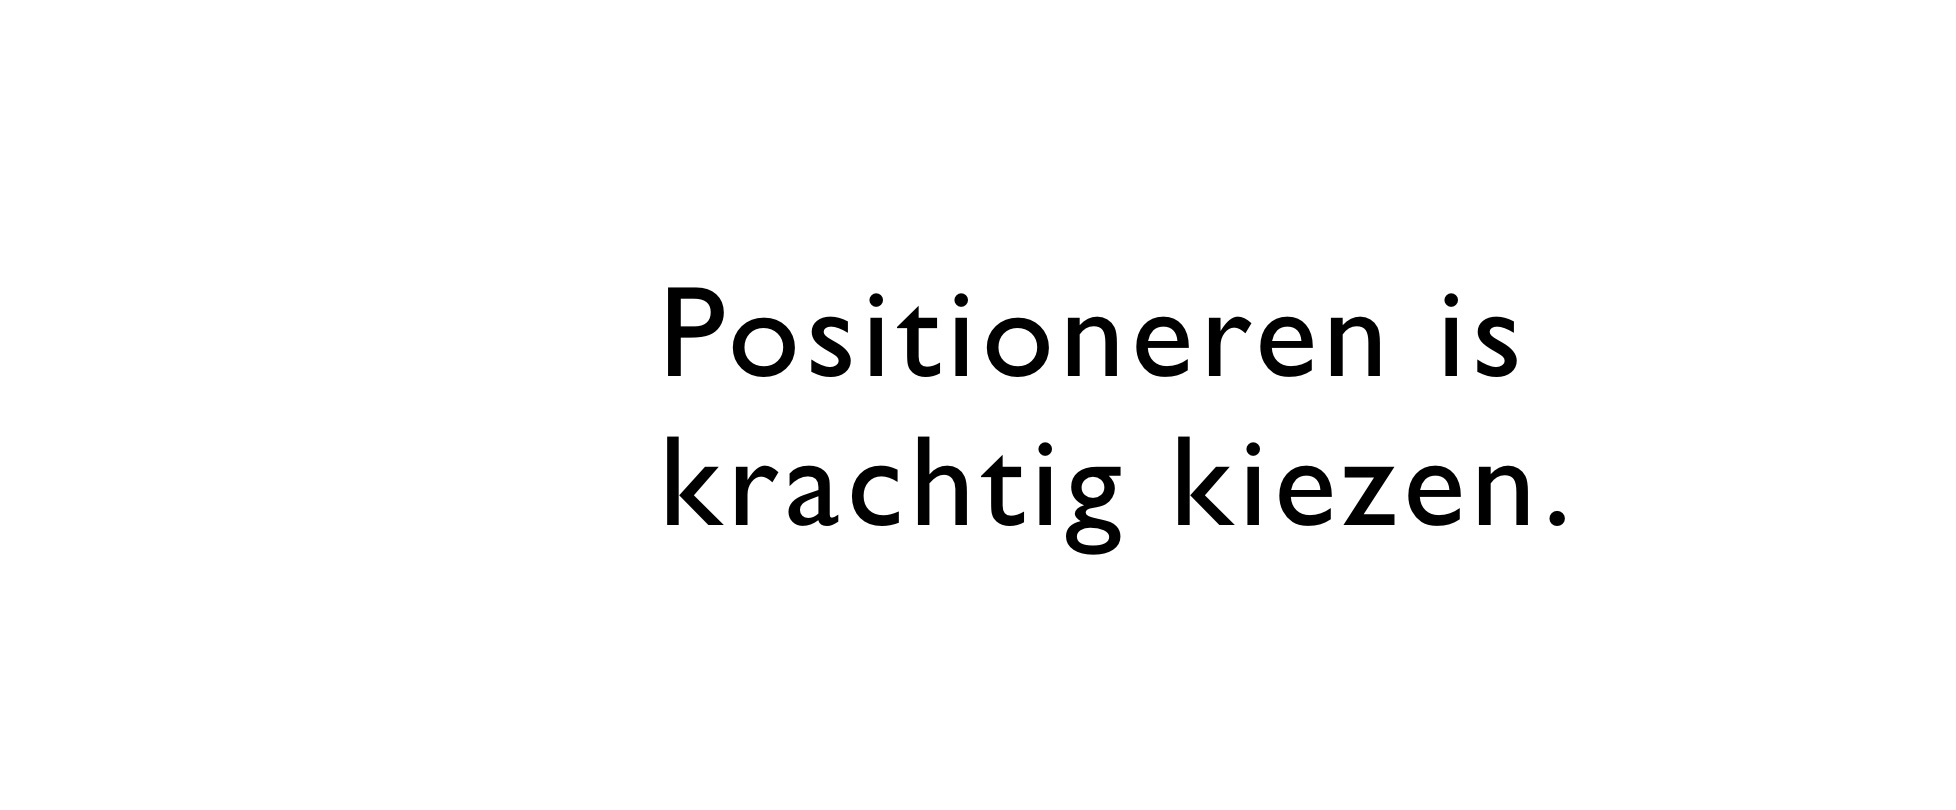 CP Positioneringsadvies geeft advies over positionering